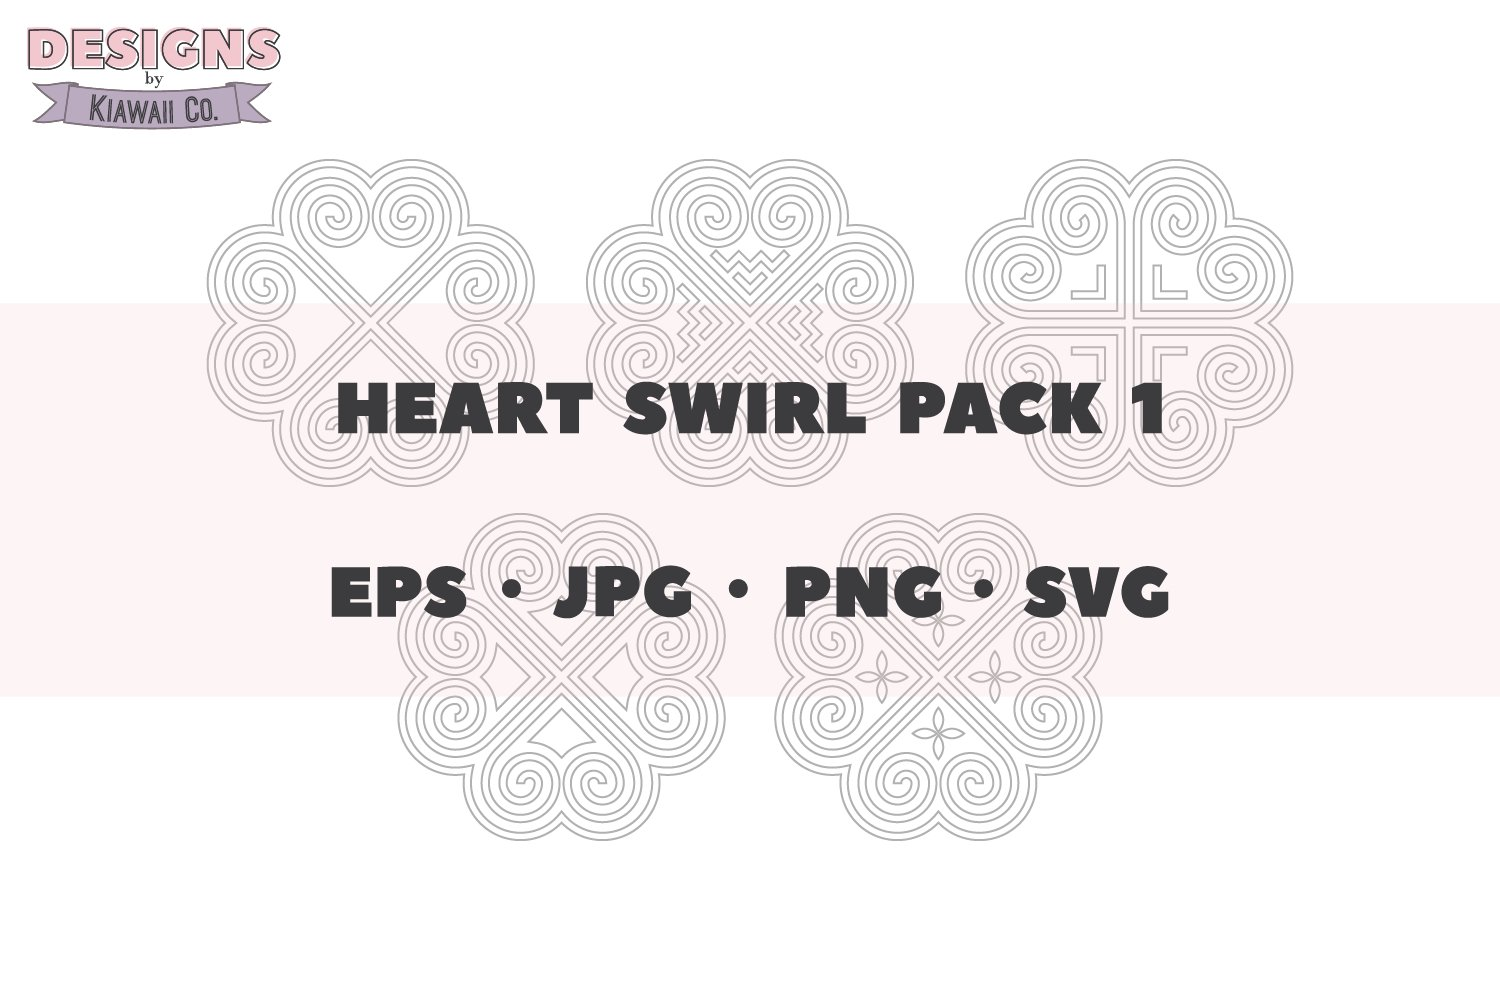 Hmong Heart Swirl Pack 1 - EPS - JPG - PNG - SVG example image 1